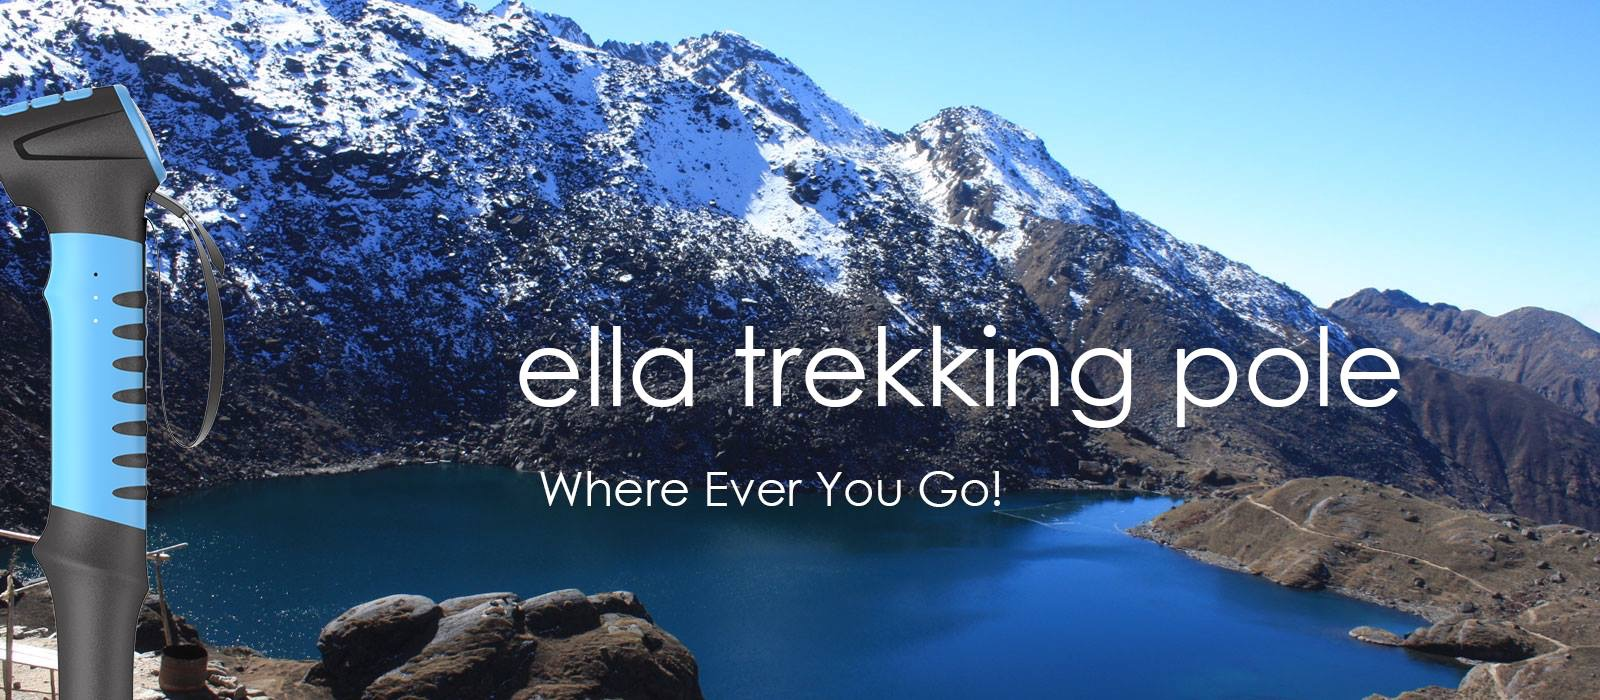 Ella All-In-One Trekking Pole Set to Launch on Indiegogo